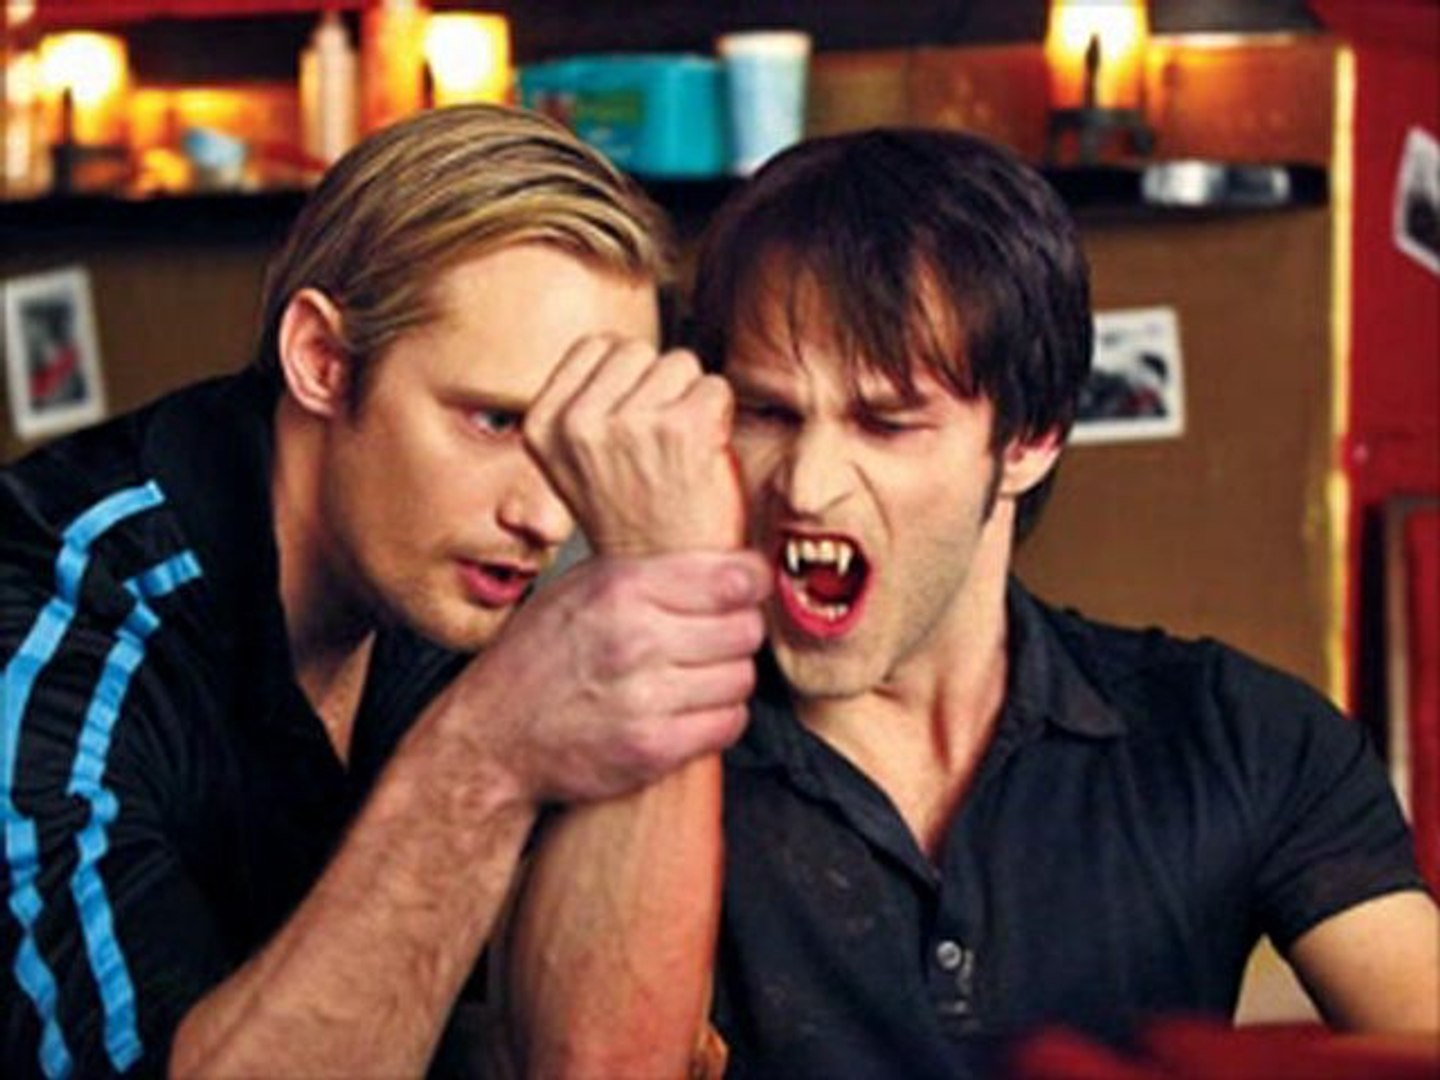 True Blood The Parody Part 1-5 full hd quality online for free Streaming